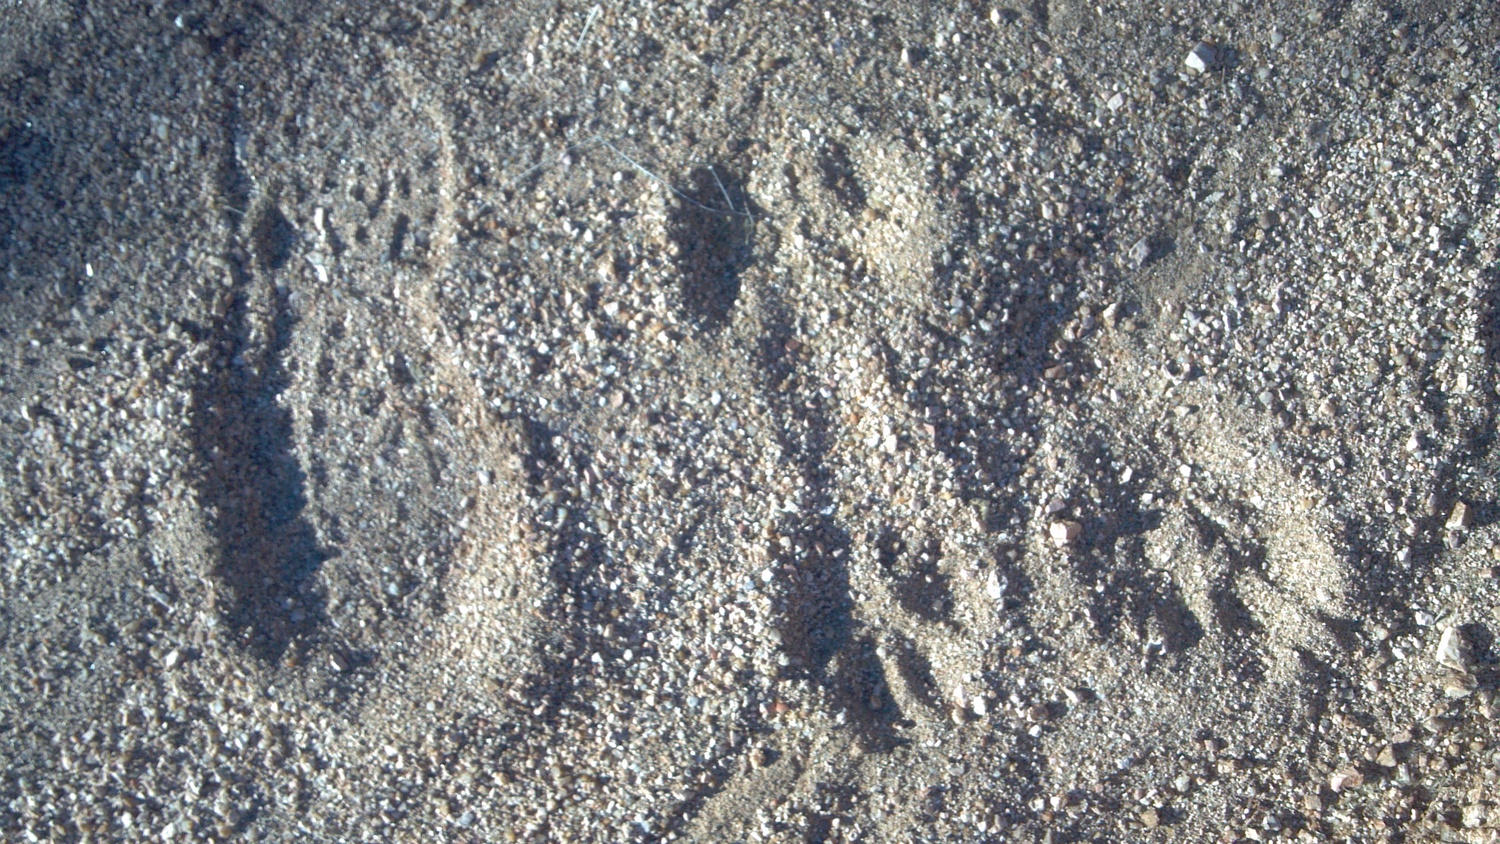 Mountain Lion tracks are a fairly common site in Arizona. - Photo Larry Atkins